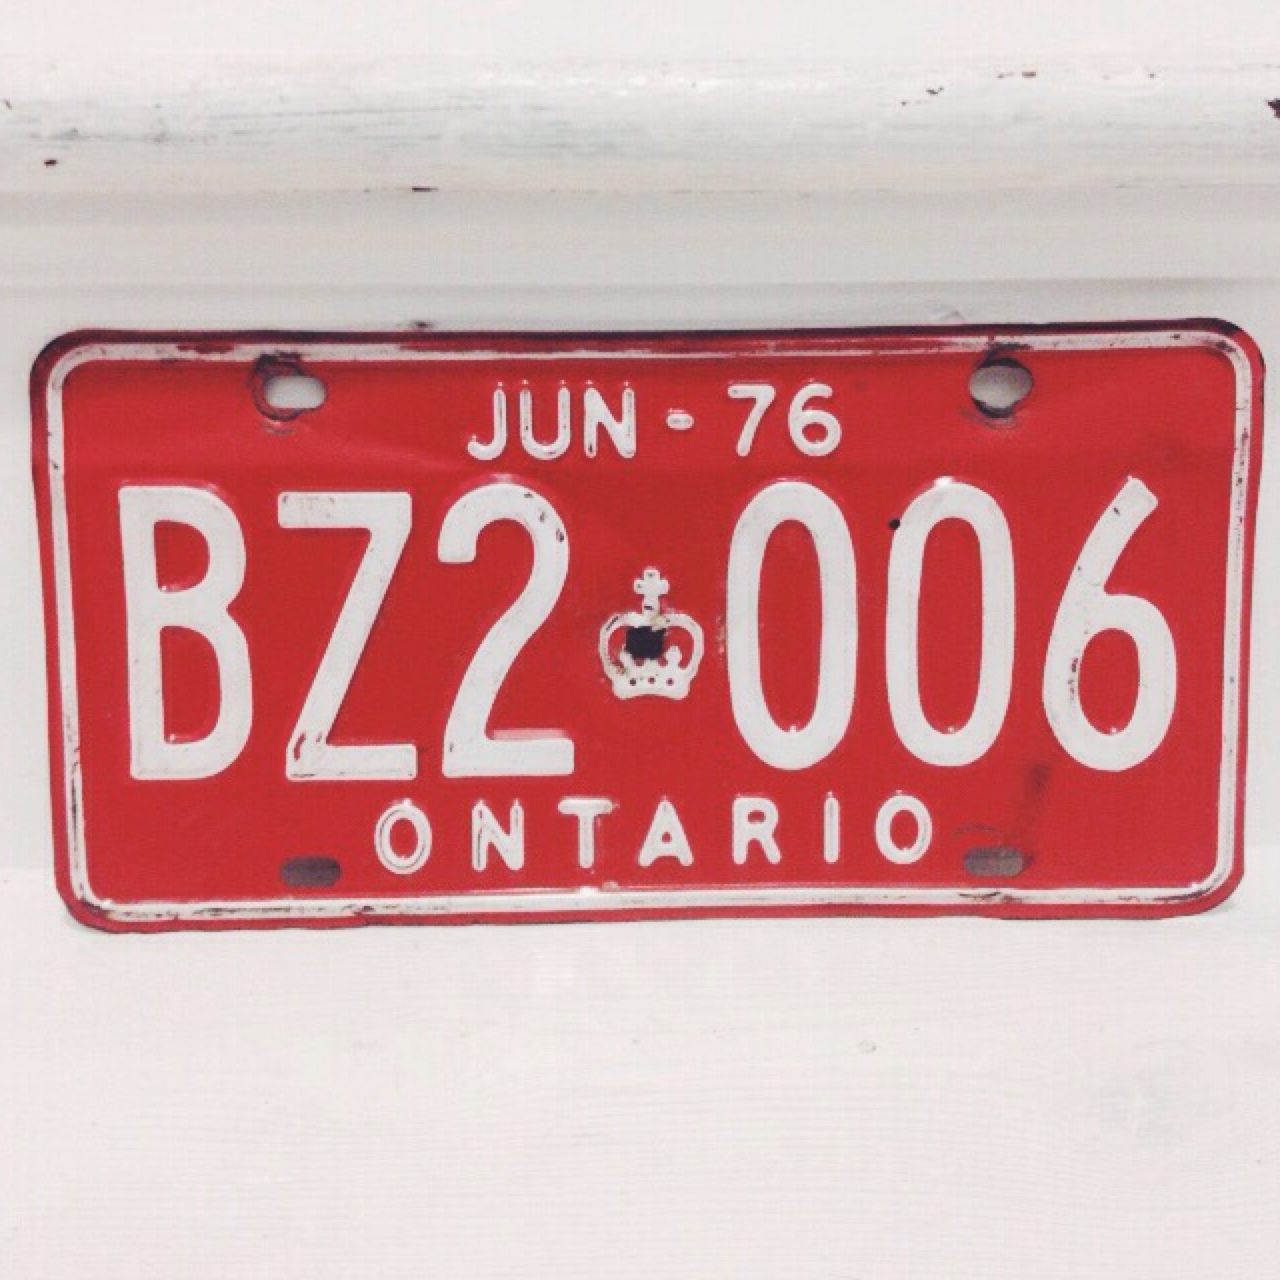 Where To Get Car Plates In Ontario